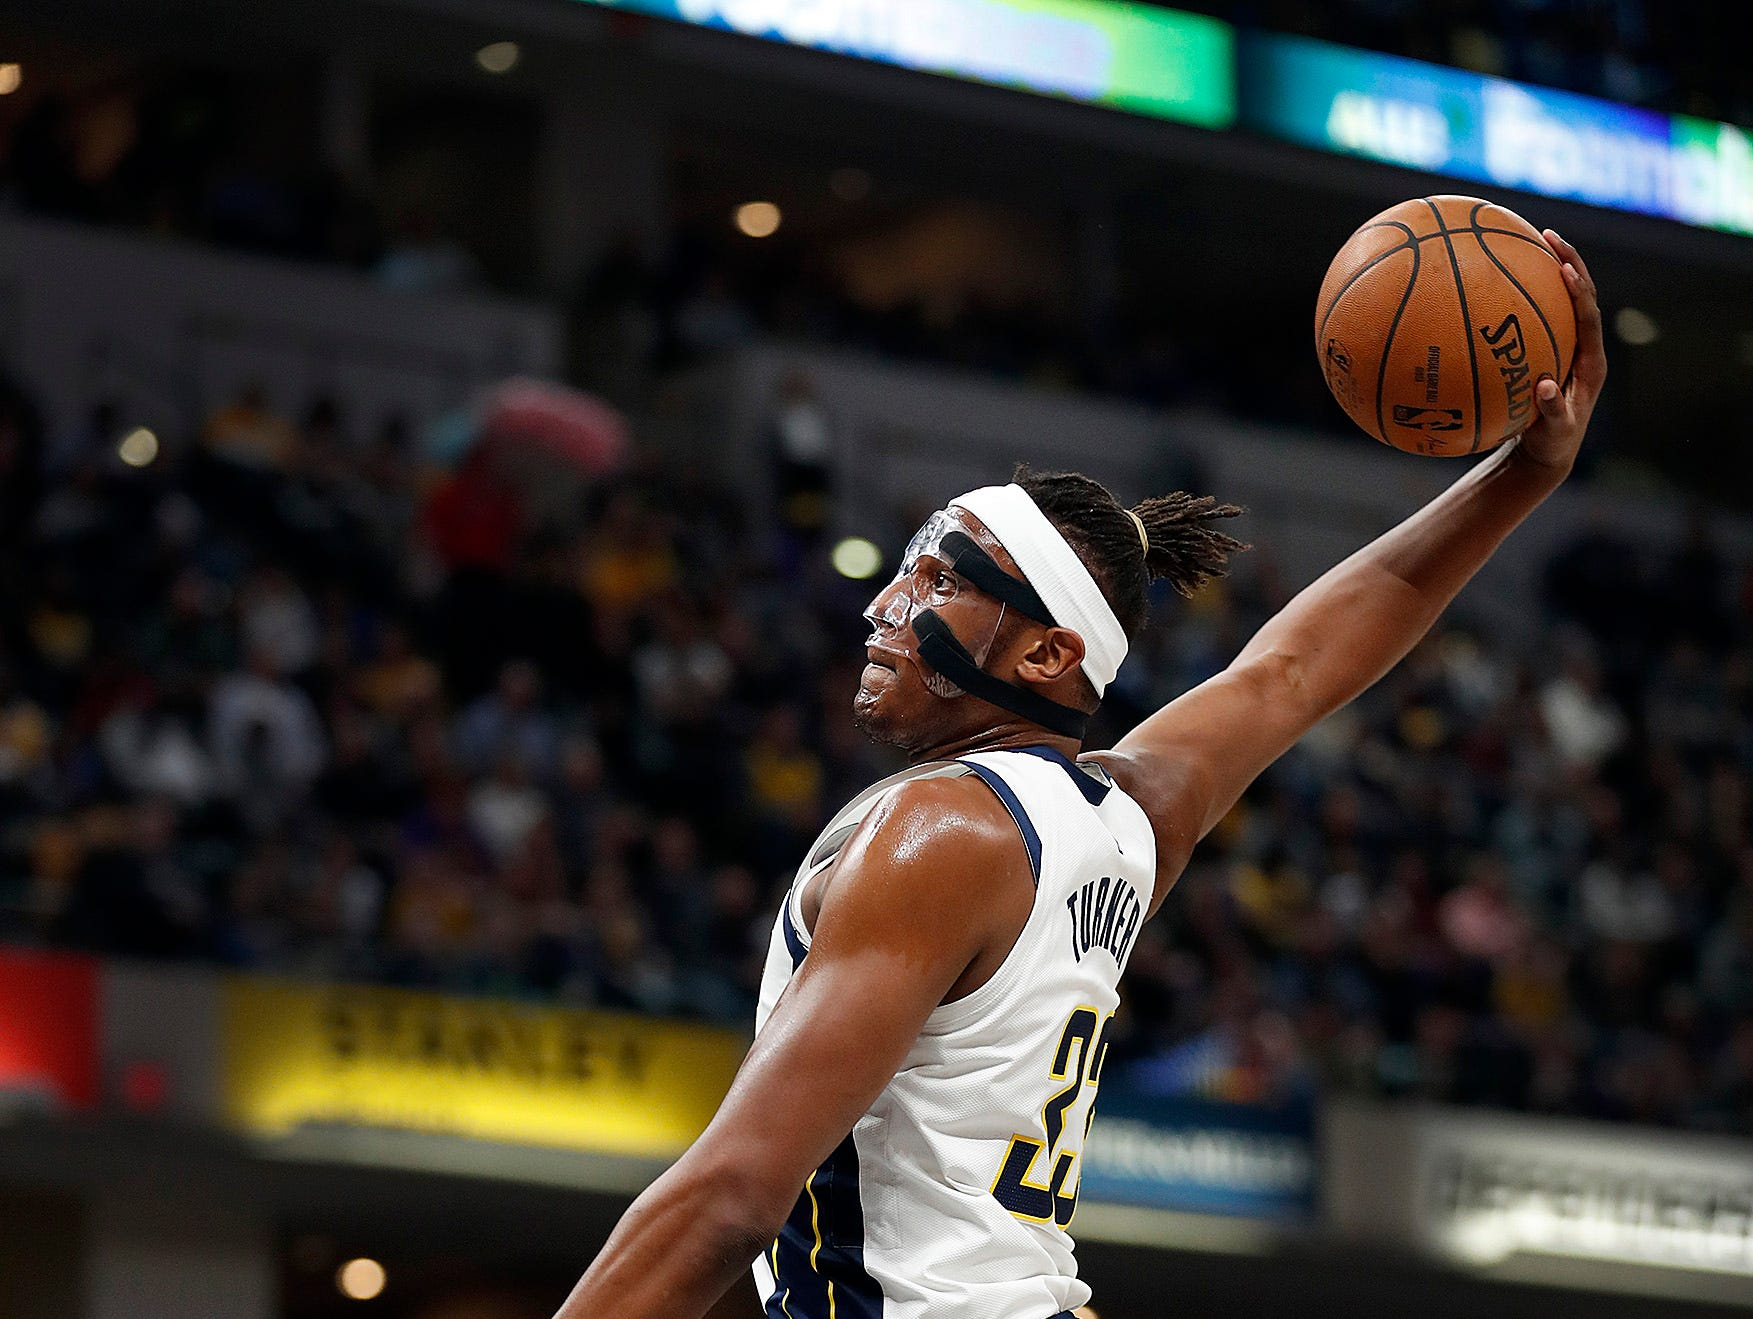 Indiana Pacers center Myles Turner (33) goes up for a dunk in the first half of their game at Bankers Life Fieldhouse on Tuesday, Feb. 5, 2019.